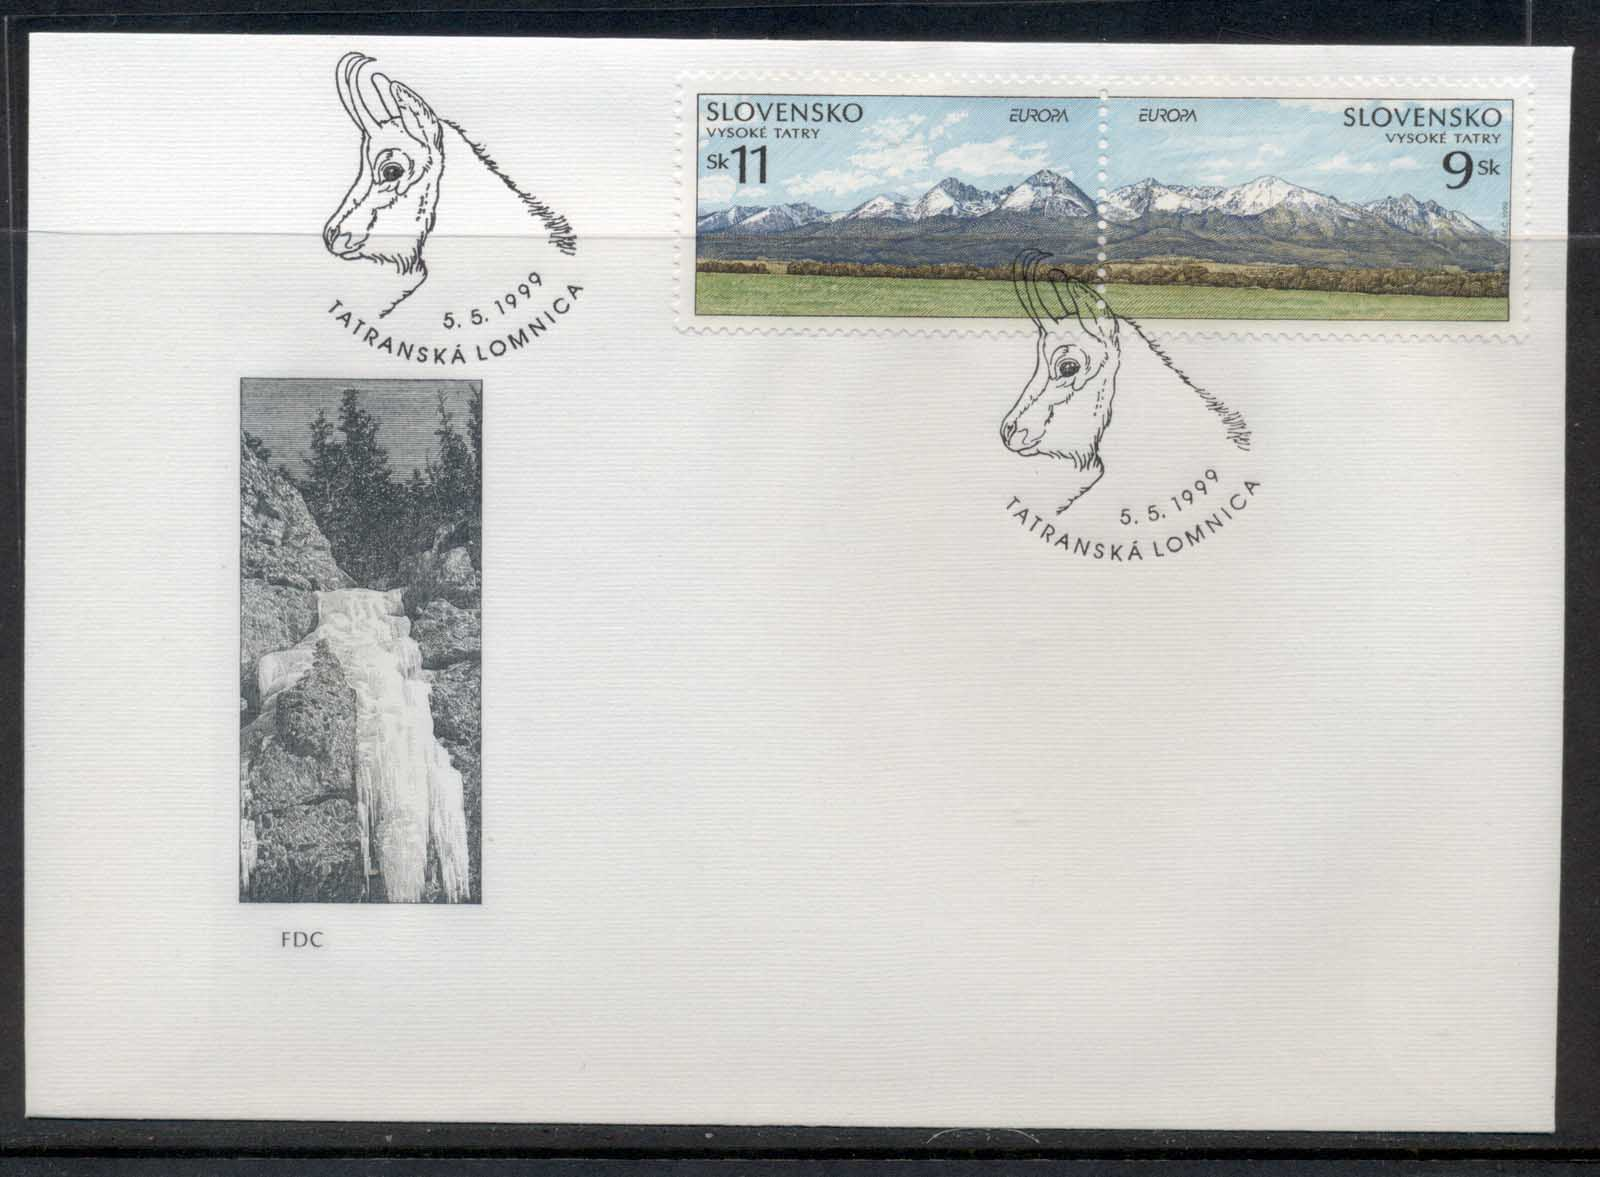 Slovenia 1999 Europa Nature Parks FDC - Click Image to Close